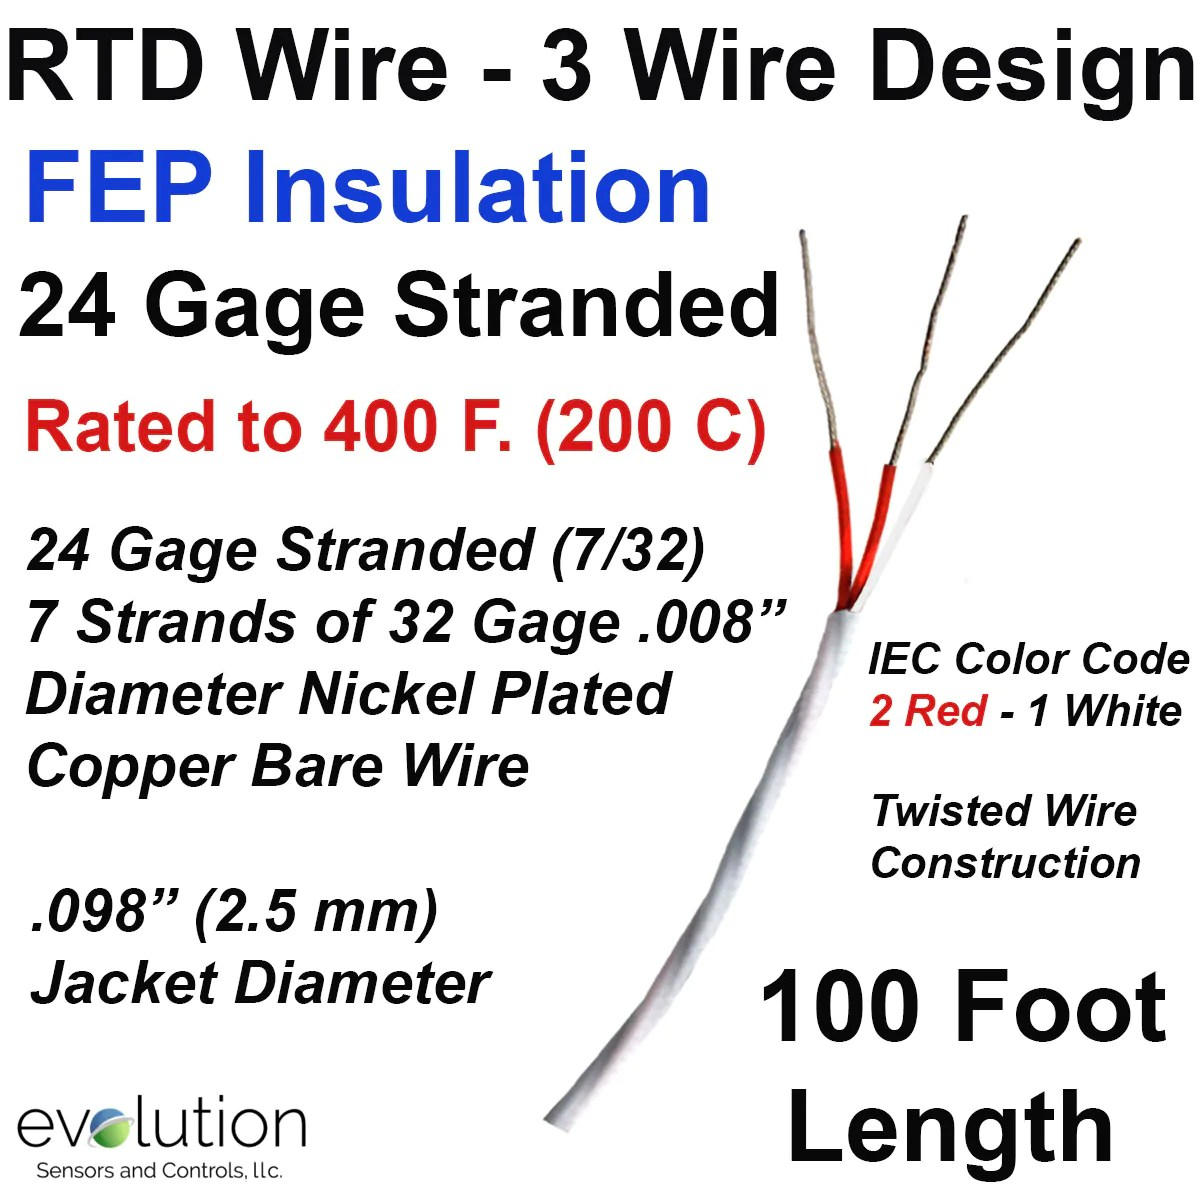 rtd wiring color code wiring diagram show rtd wire color code rtd wiring color code [ 1200 x 1200 Pixel ]